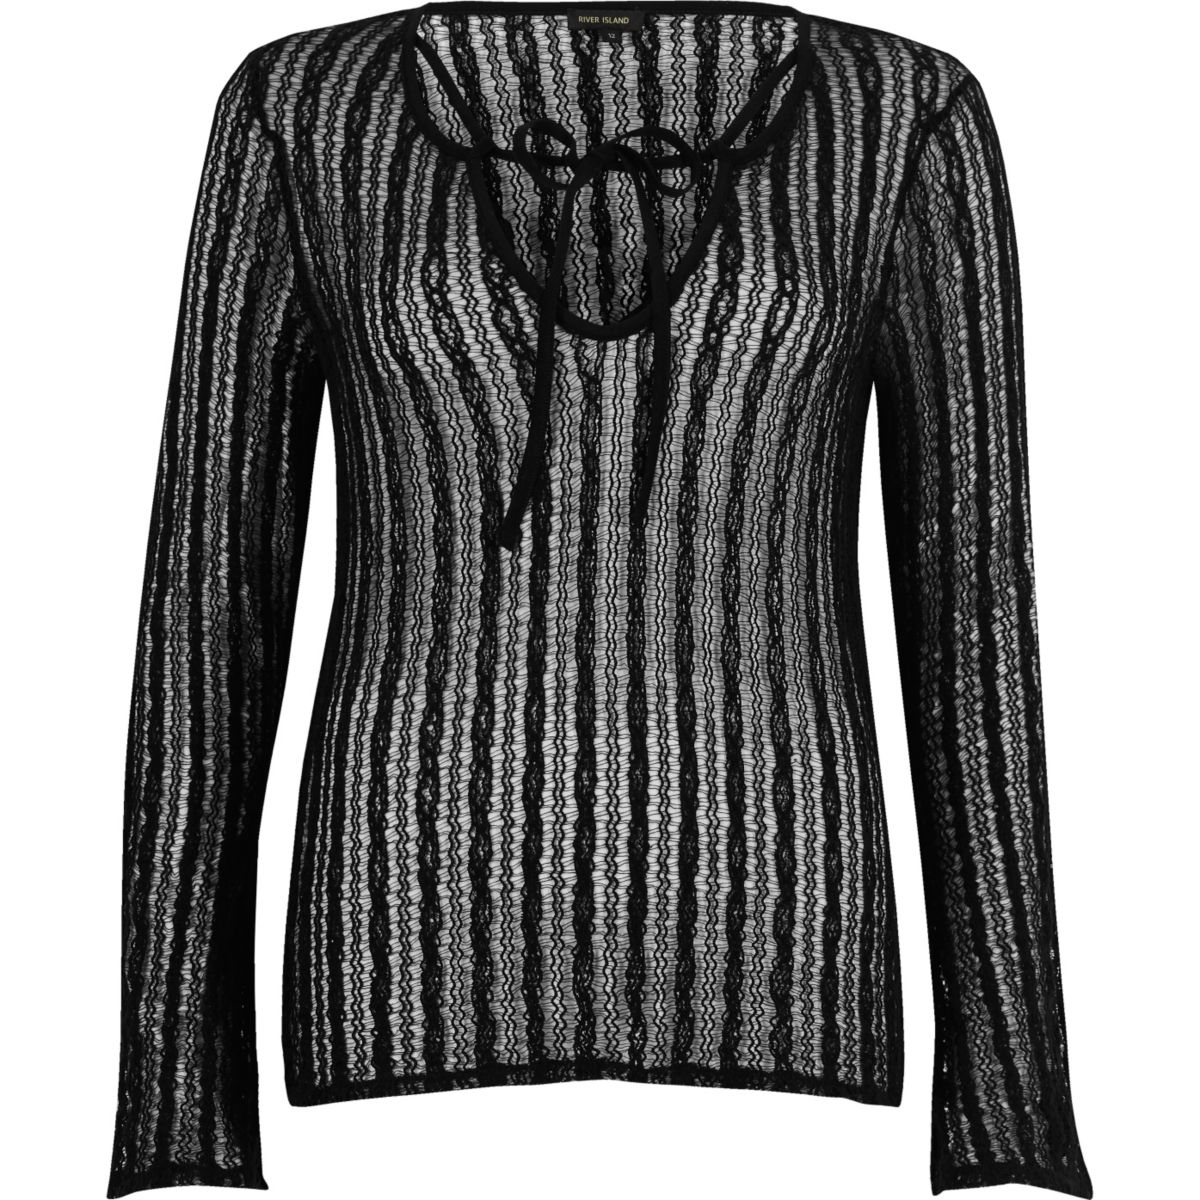 Black open mesh lace-up front top